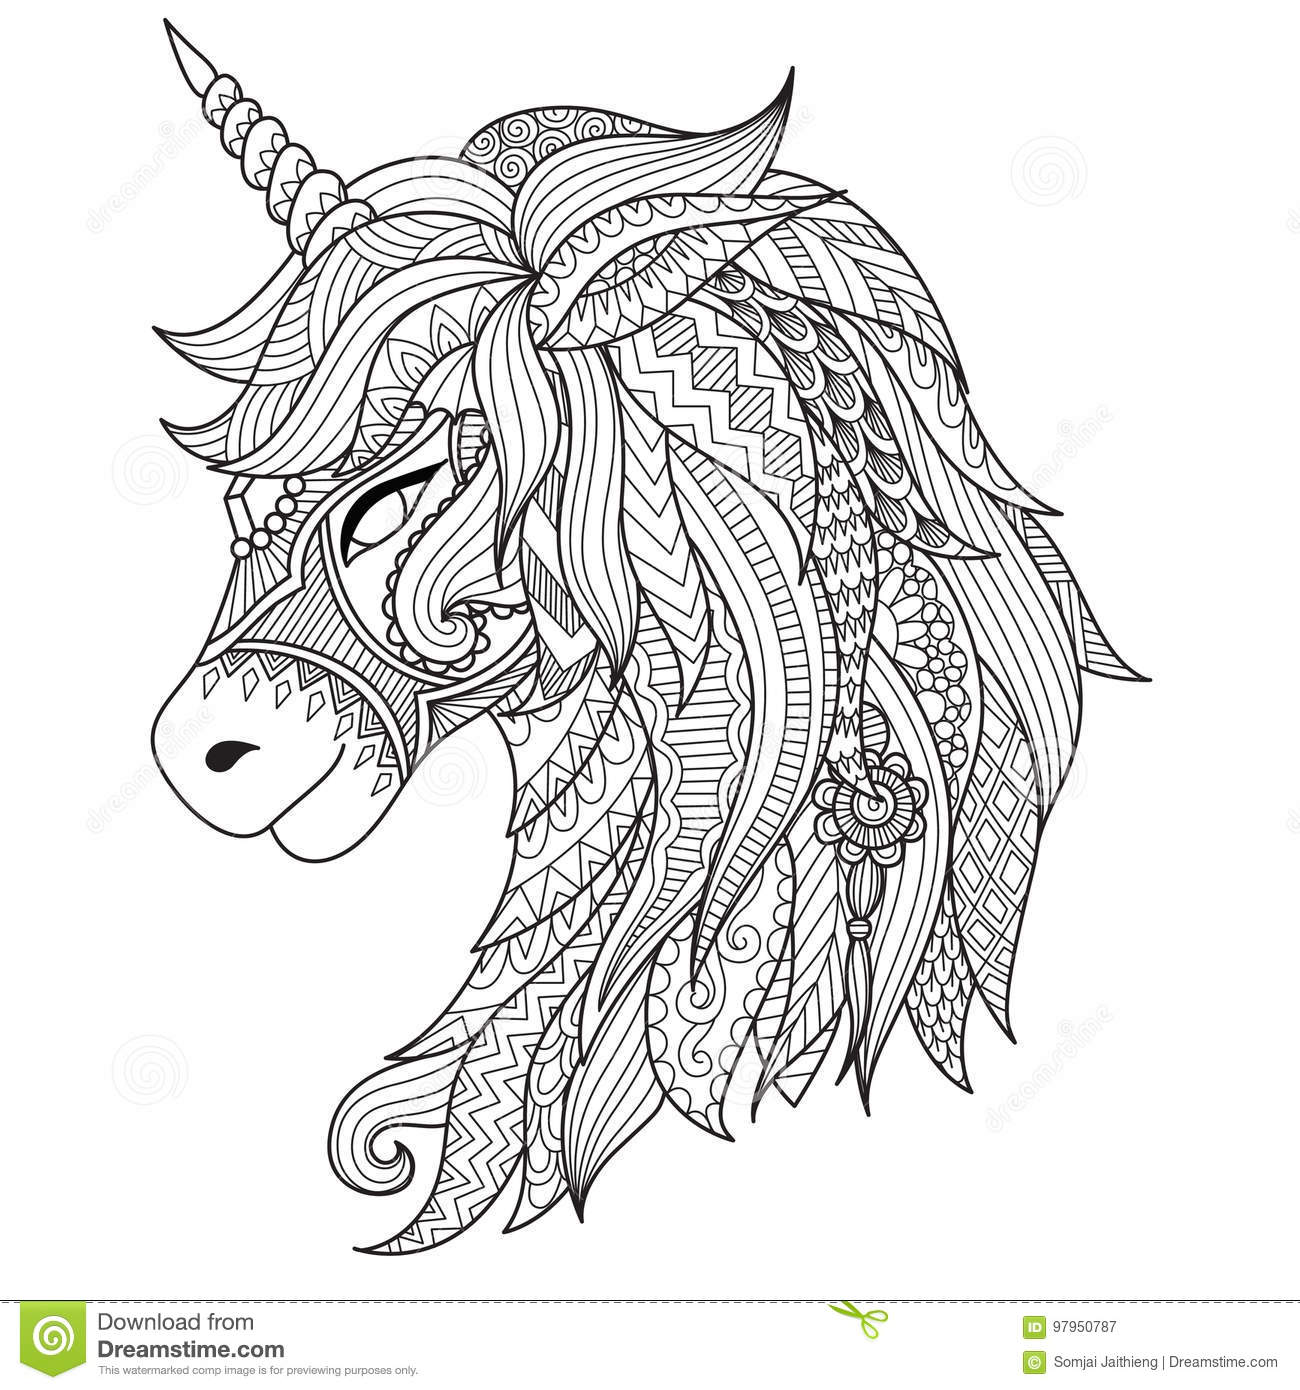 Drawing Unicorn Zentangle Style For Coloring Book Tattoo